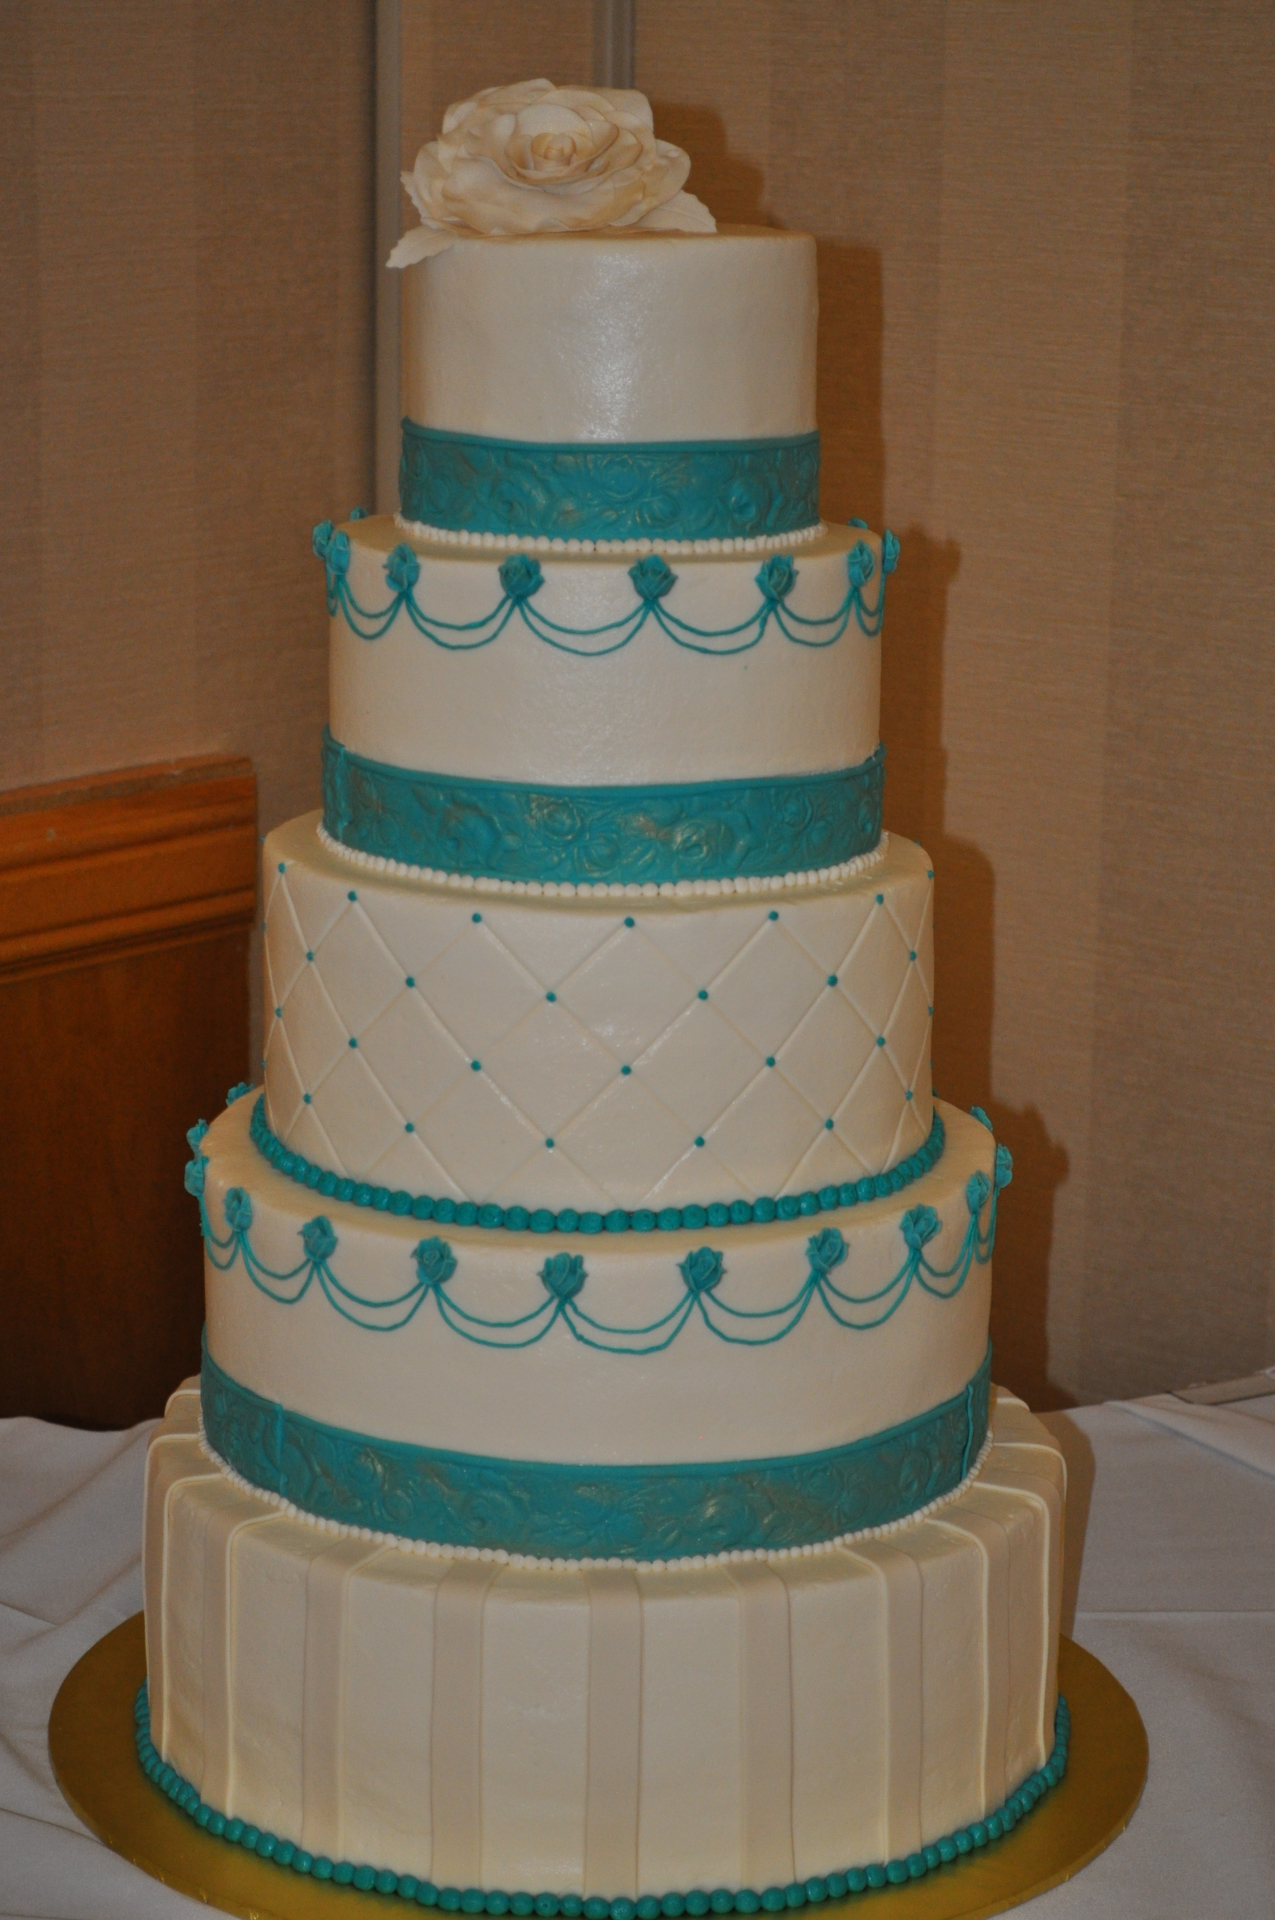 Teal  accents 5 tiers